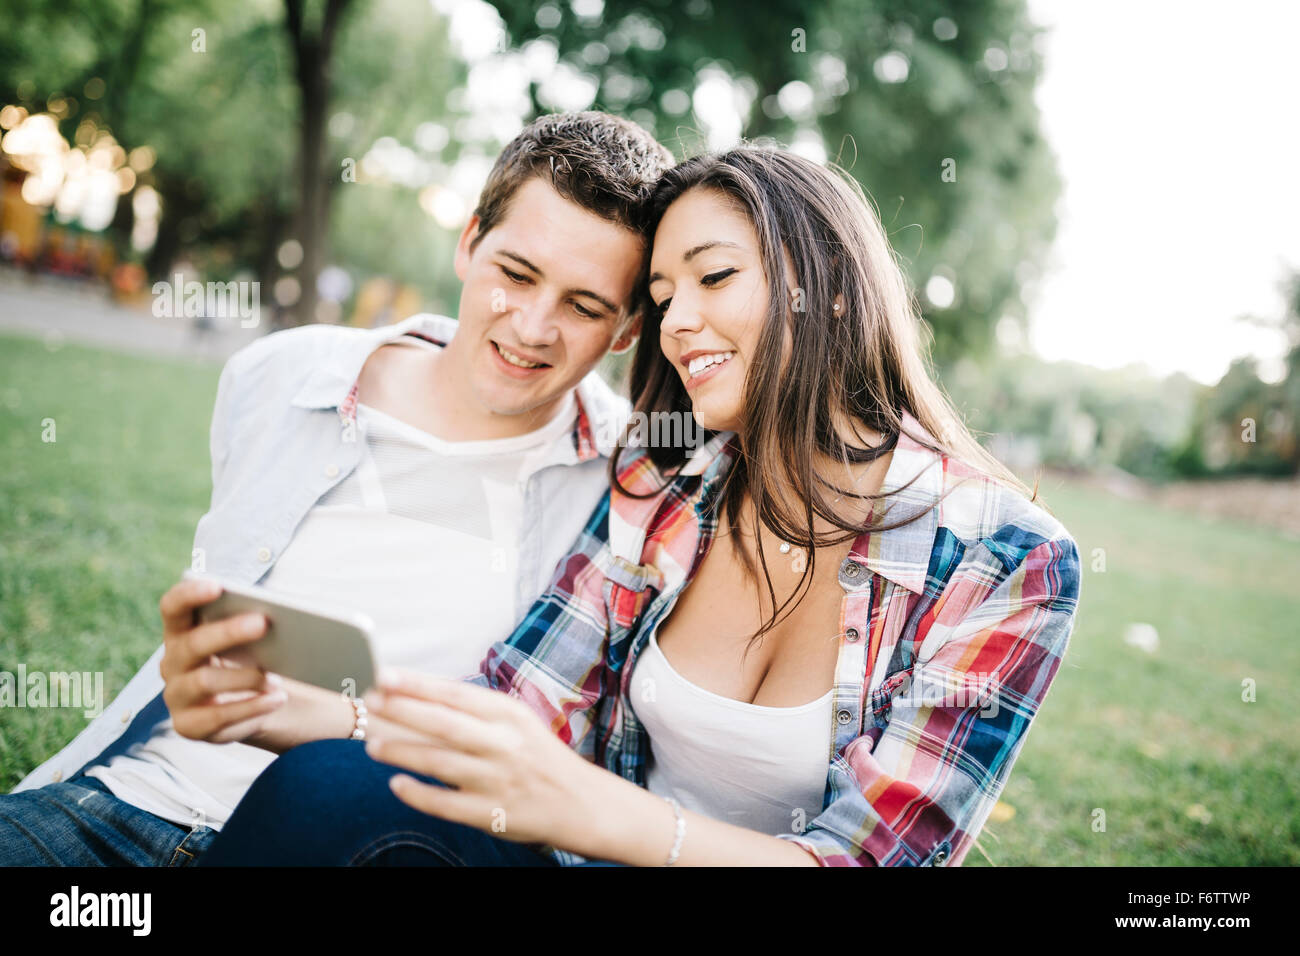 Portrait of young couple in love watching something on smartphone in a park - Stock Image